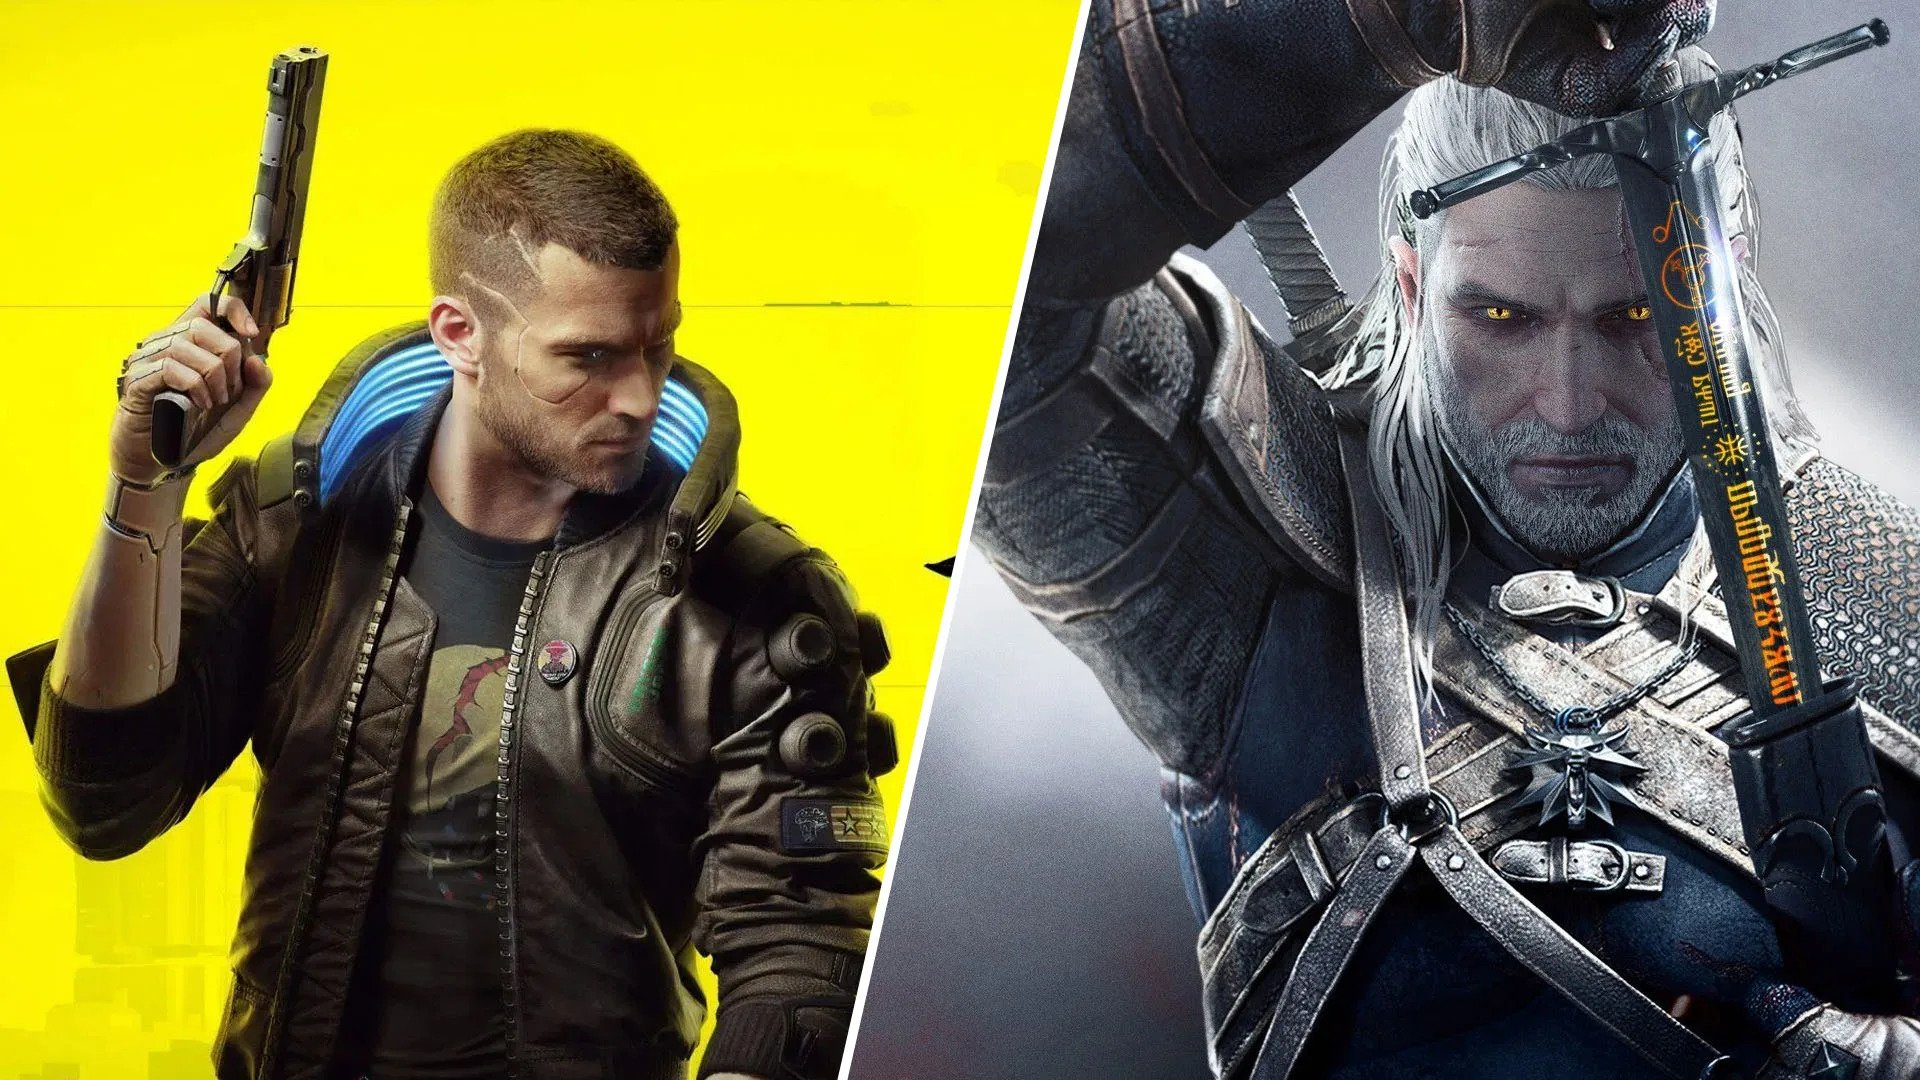 Cyberpunk 2077 and Witcher 3